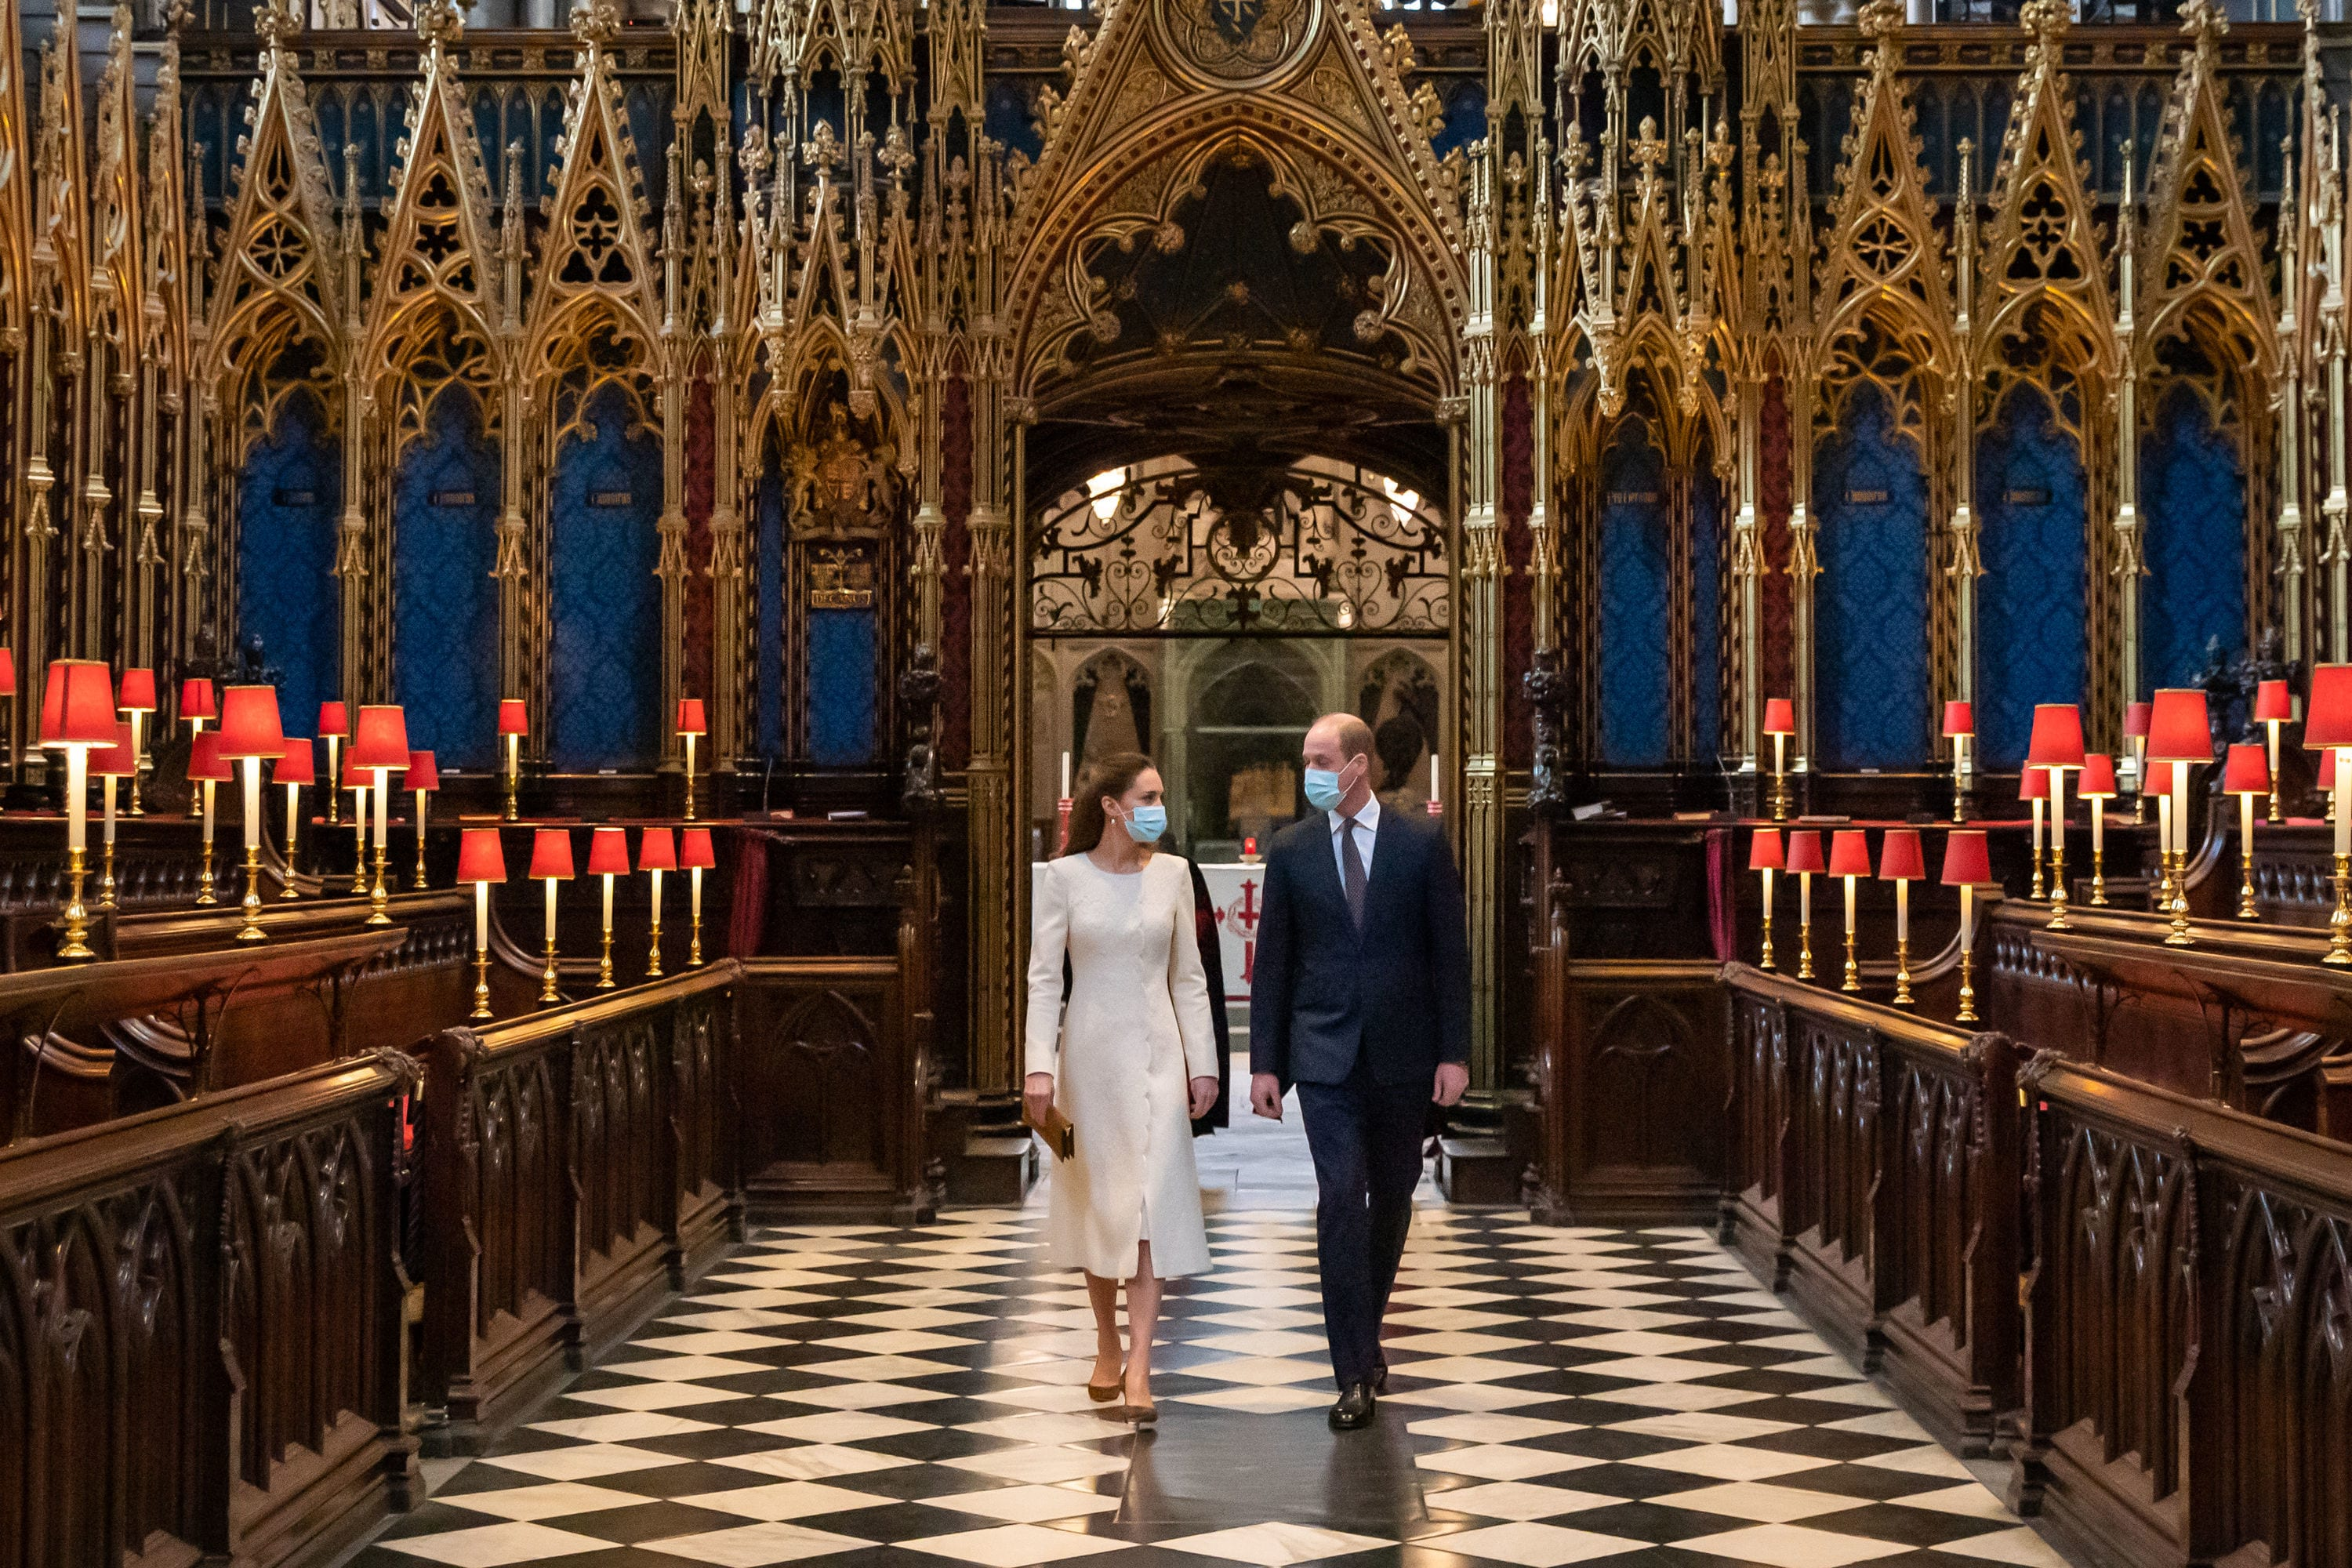 Why Prince William and Kate Middleton Returned to Their Wedding Venue Today